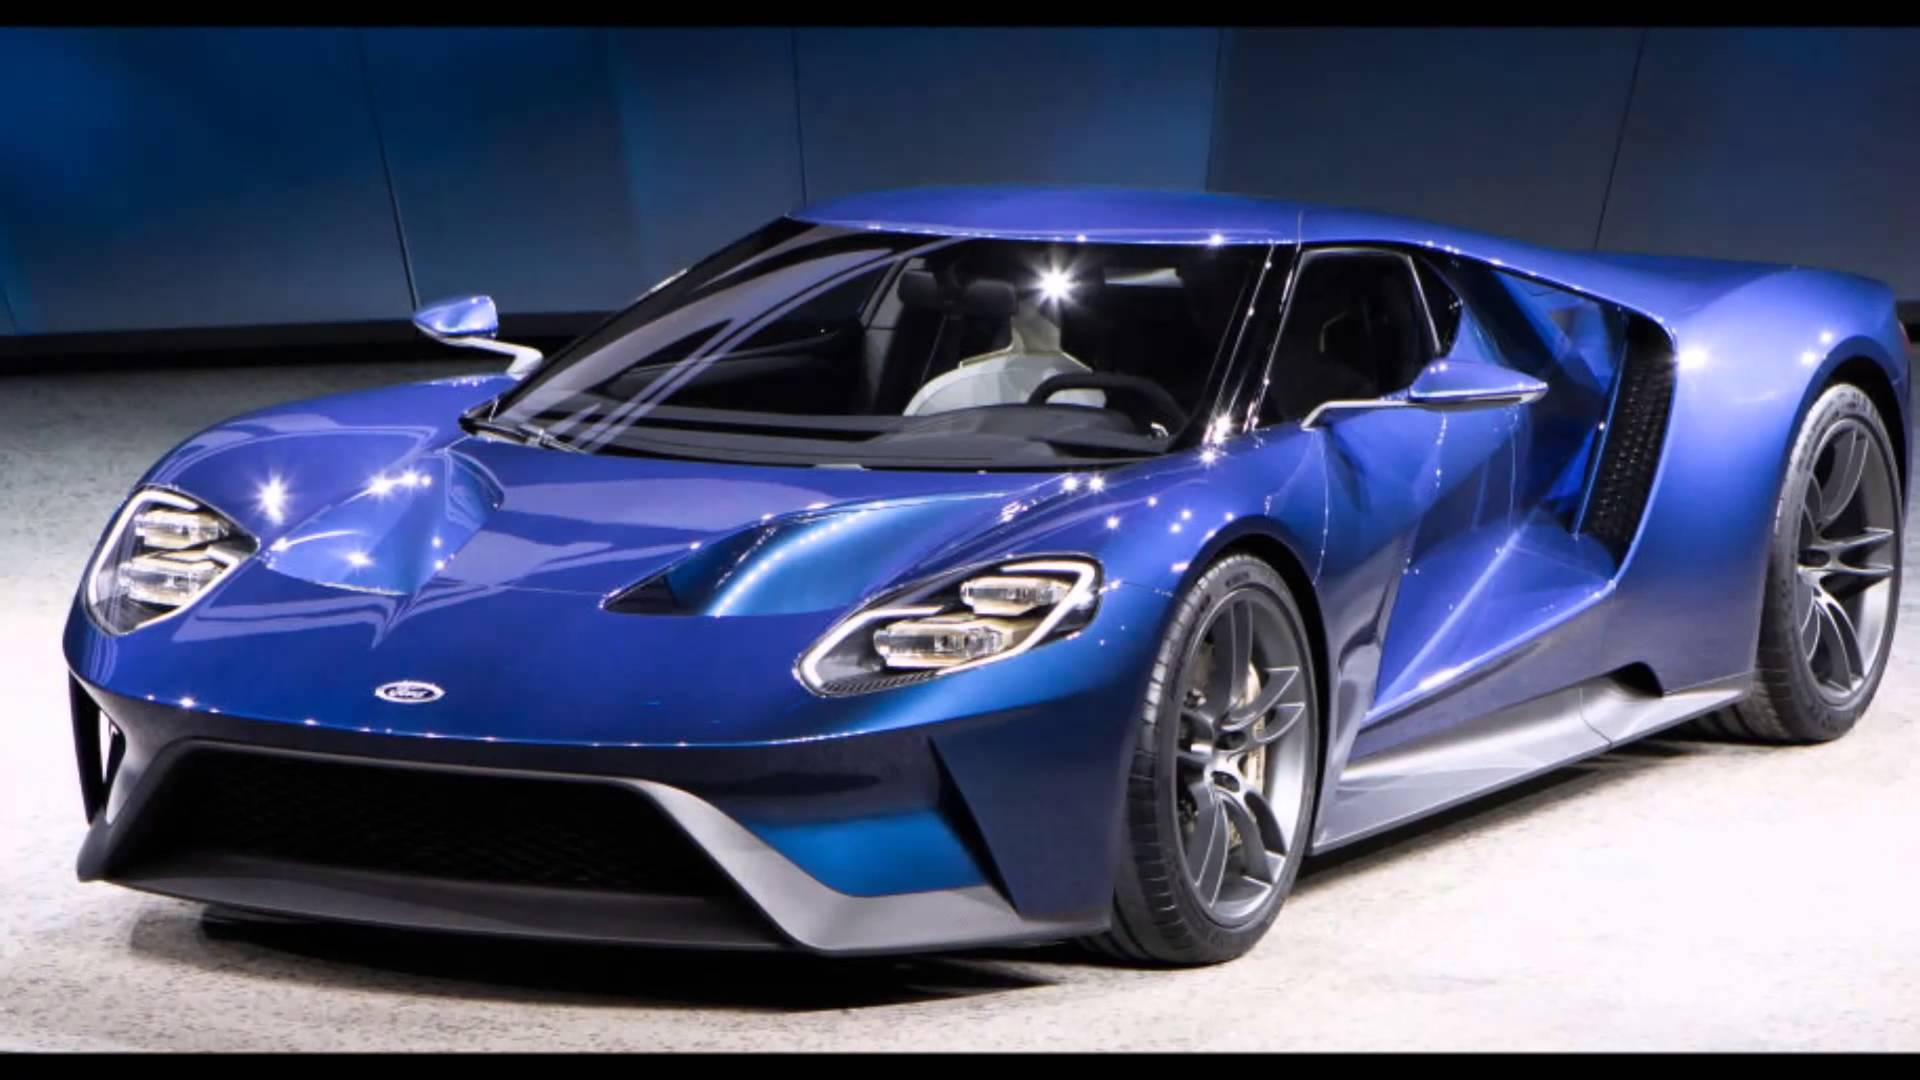 2017 Ford GT limited to 250 Per Year production and allocation to 1920x1080